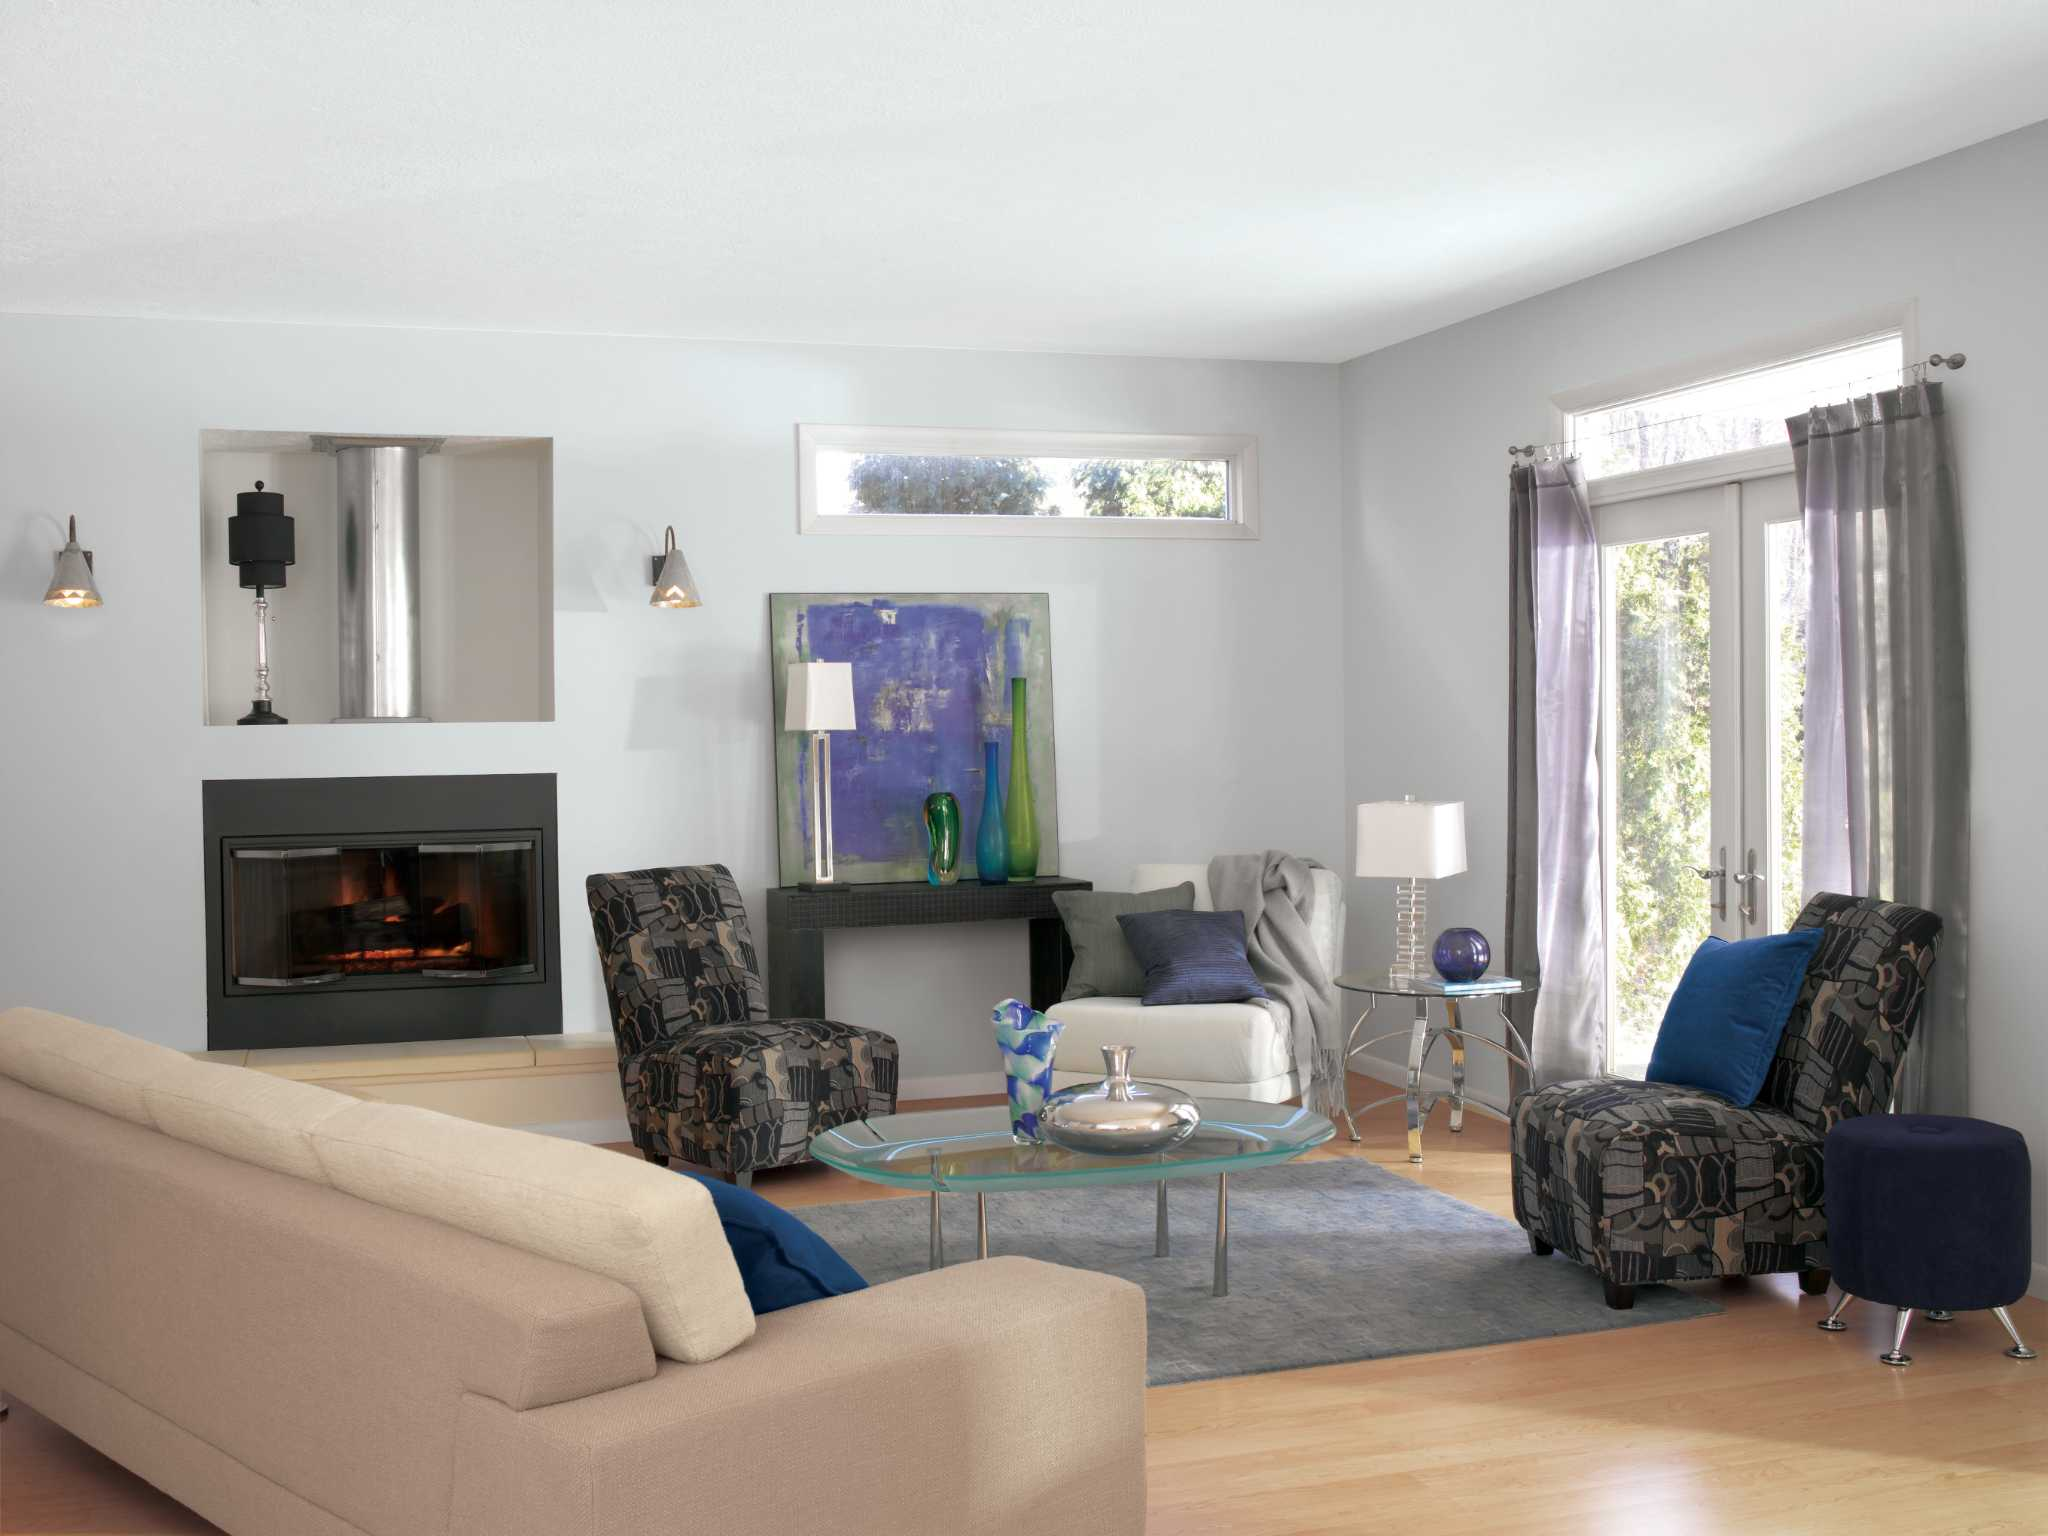 Glidden Smoky Charcoal wading through a sea of paint colors doesn't have to be